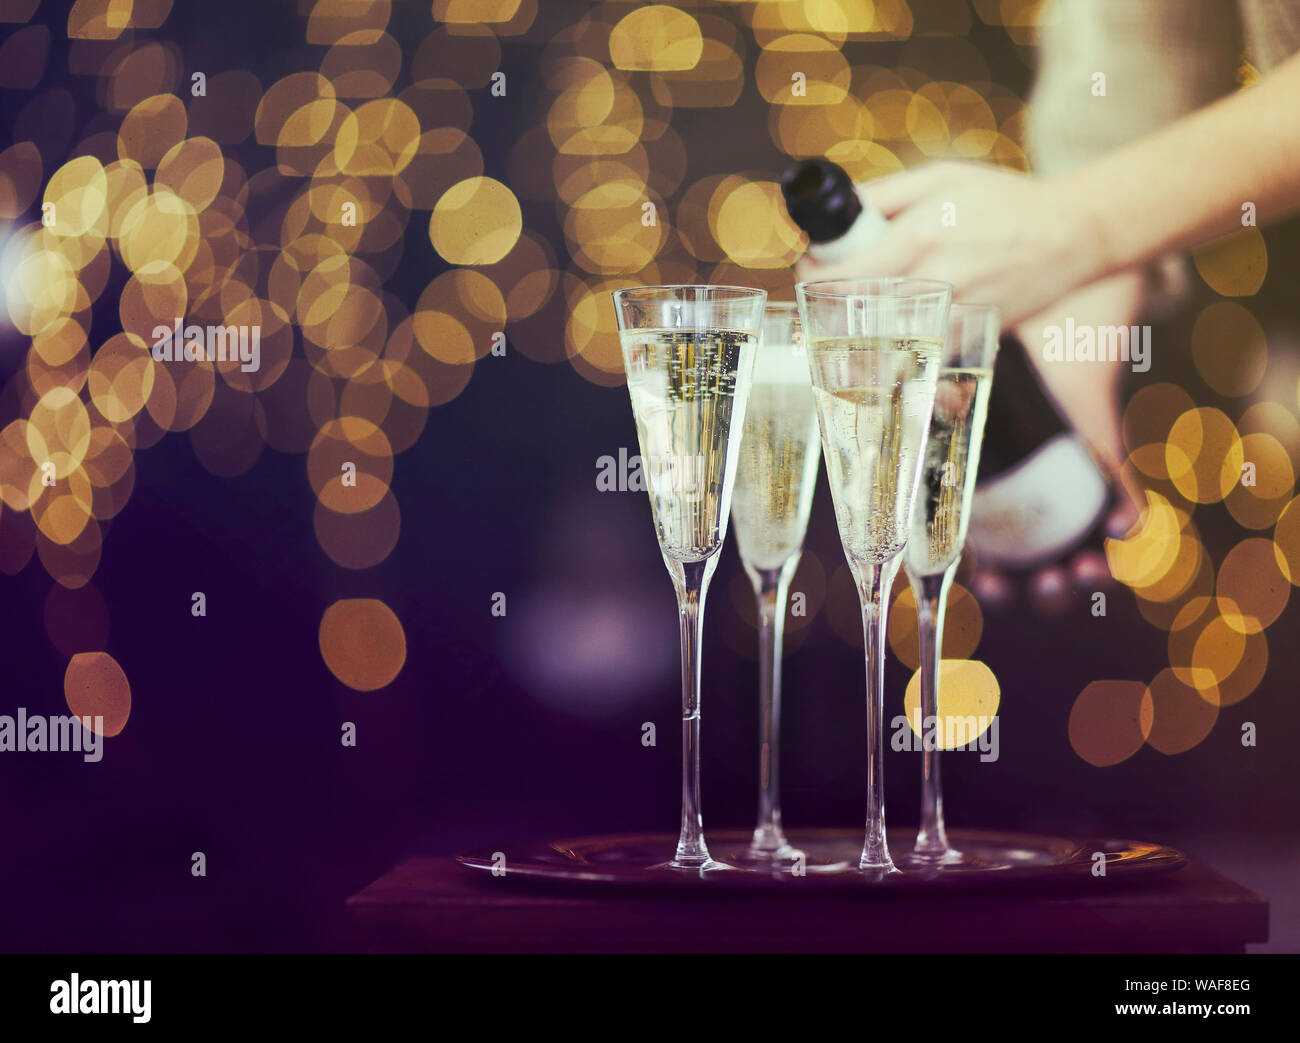 Champagne glasses on lights background. Christmas celebration background Stock Photo